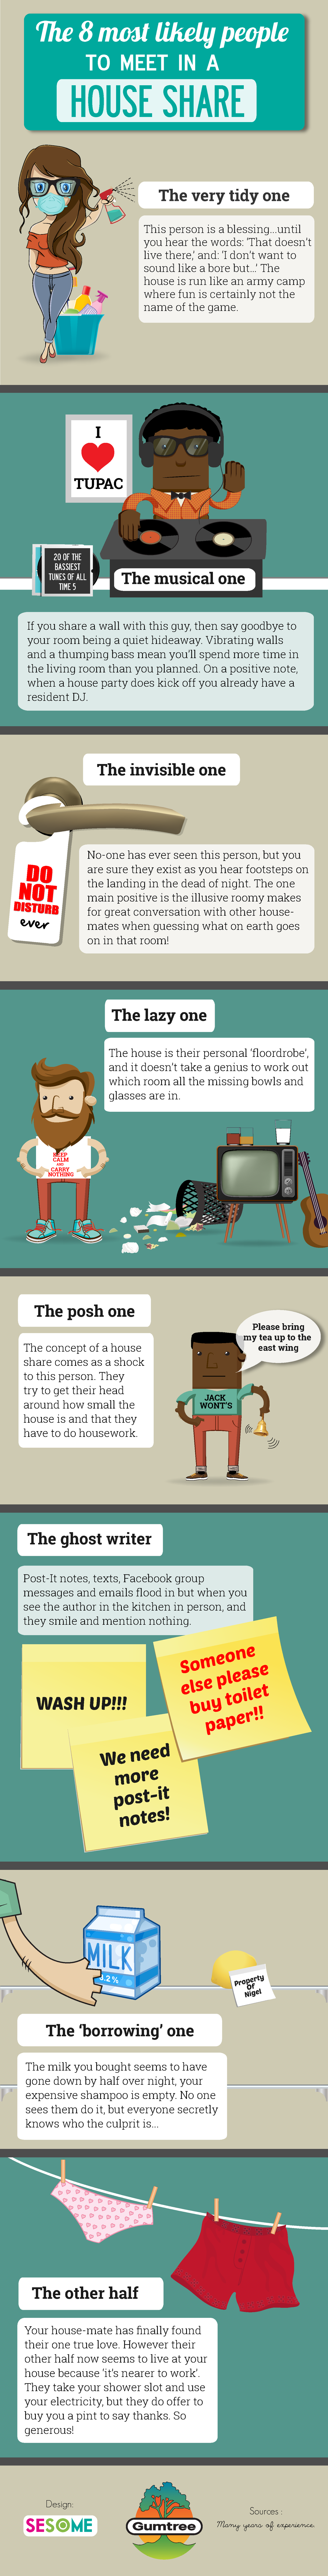 What Sort of Housemate Are You?